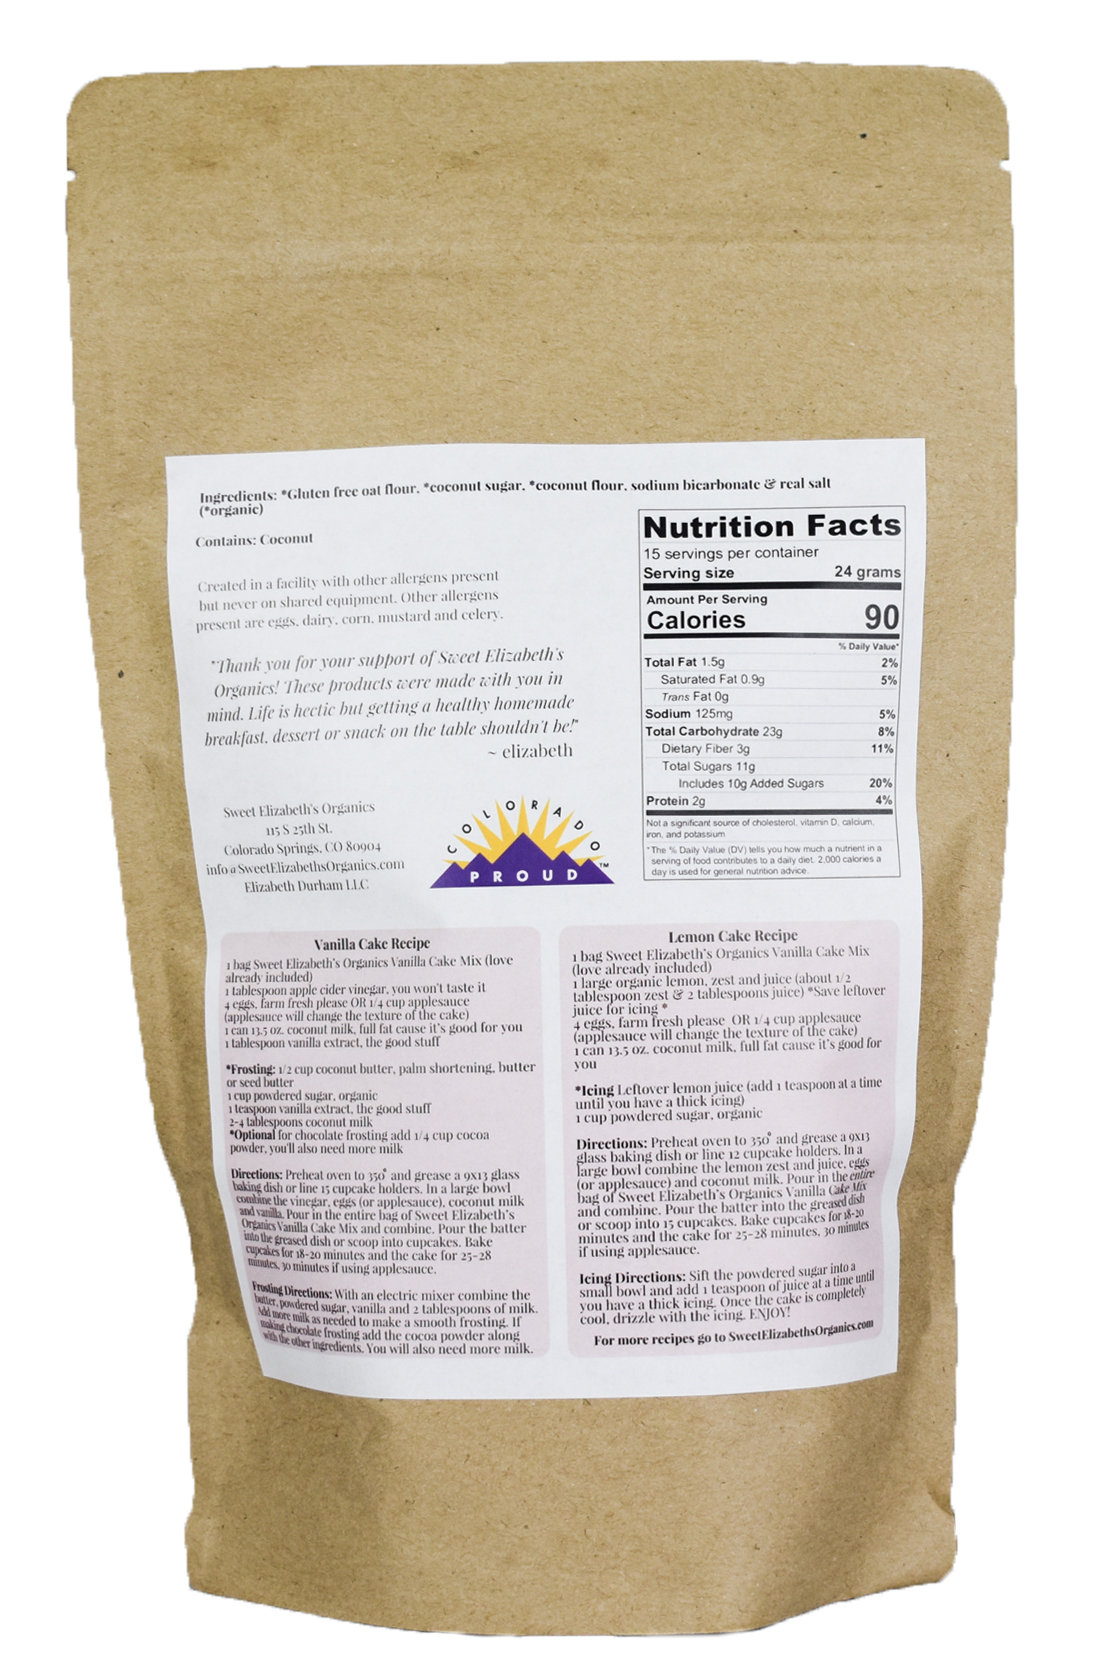 Directions & Nutrition Facts